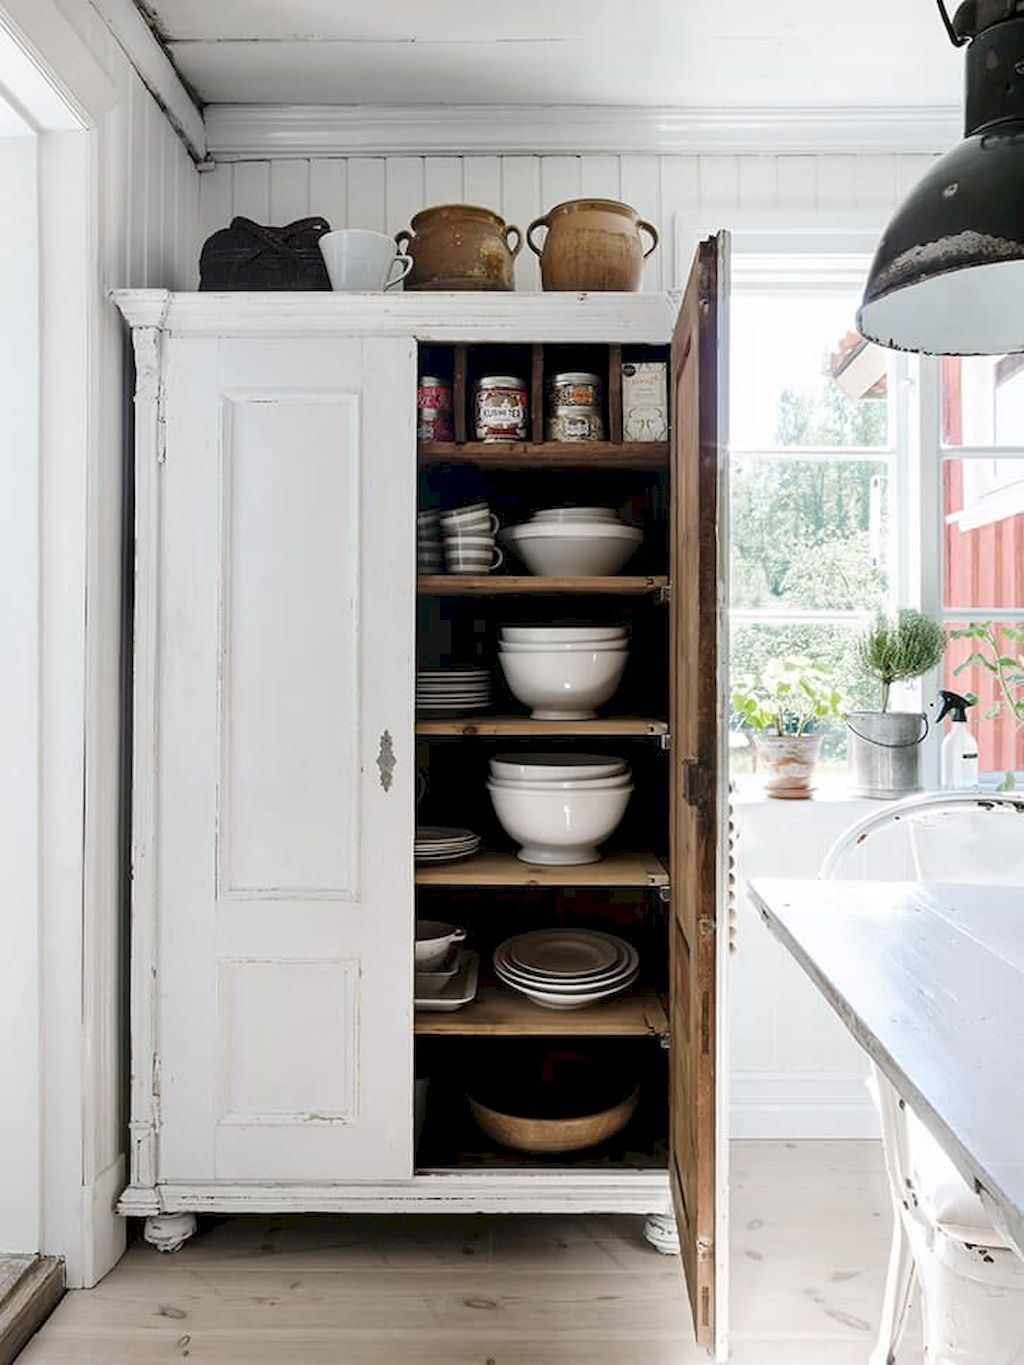 Shocking 7 Pantry Concepts To Assist You Set Up Your Kitchen Kitchen Cabinet Storage Freestanding Kitchen Free Standing Kitchen Cabinets